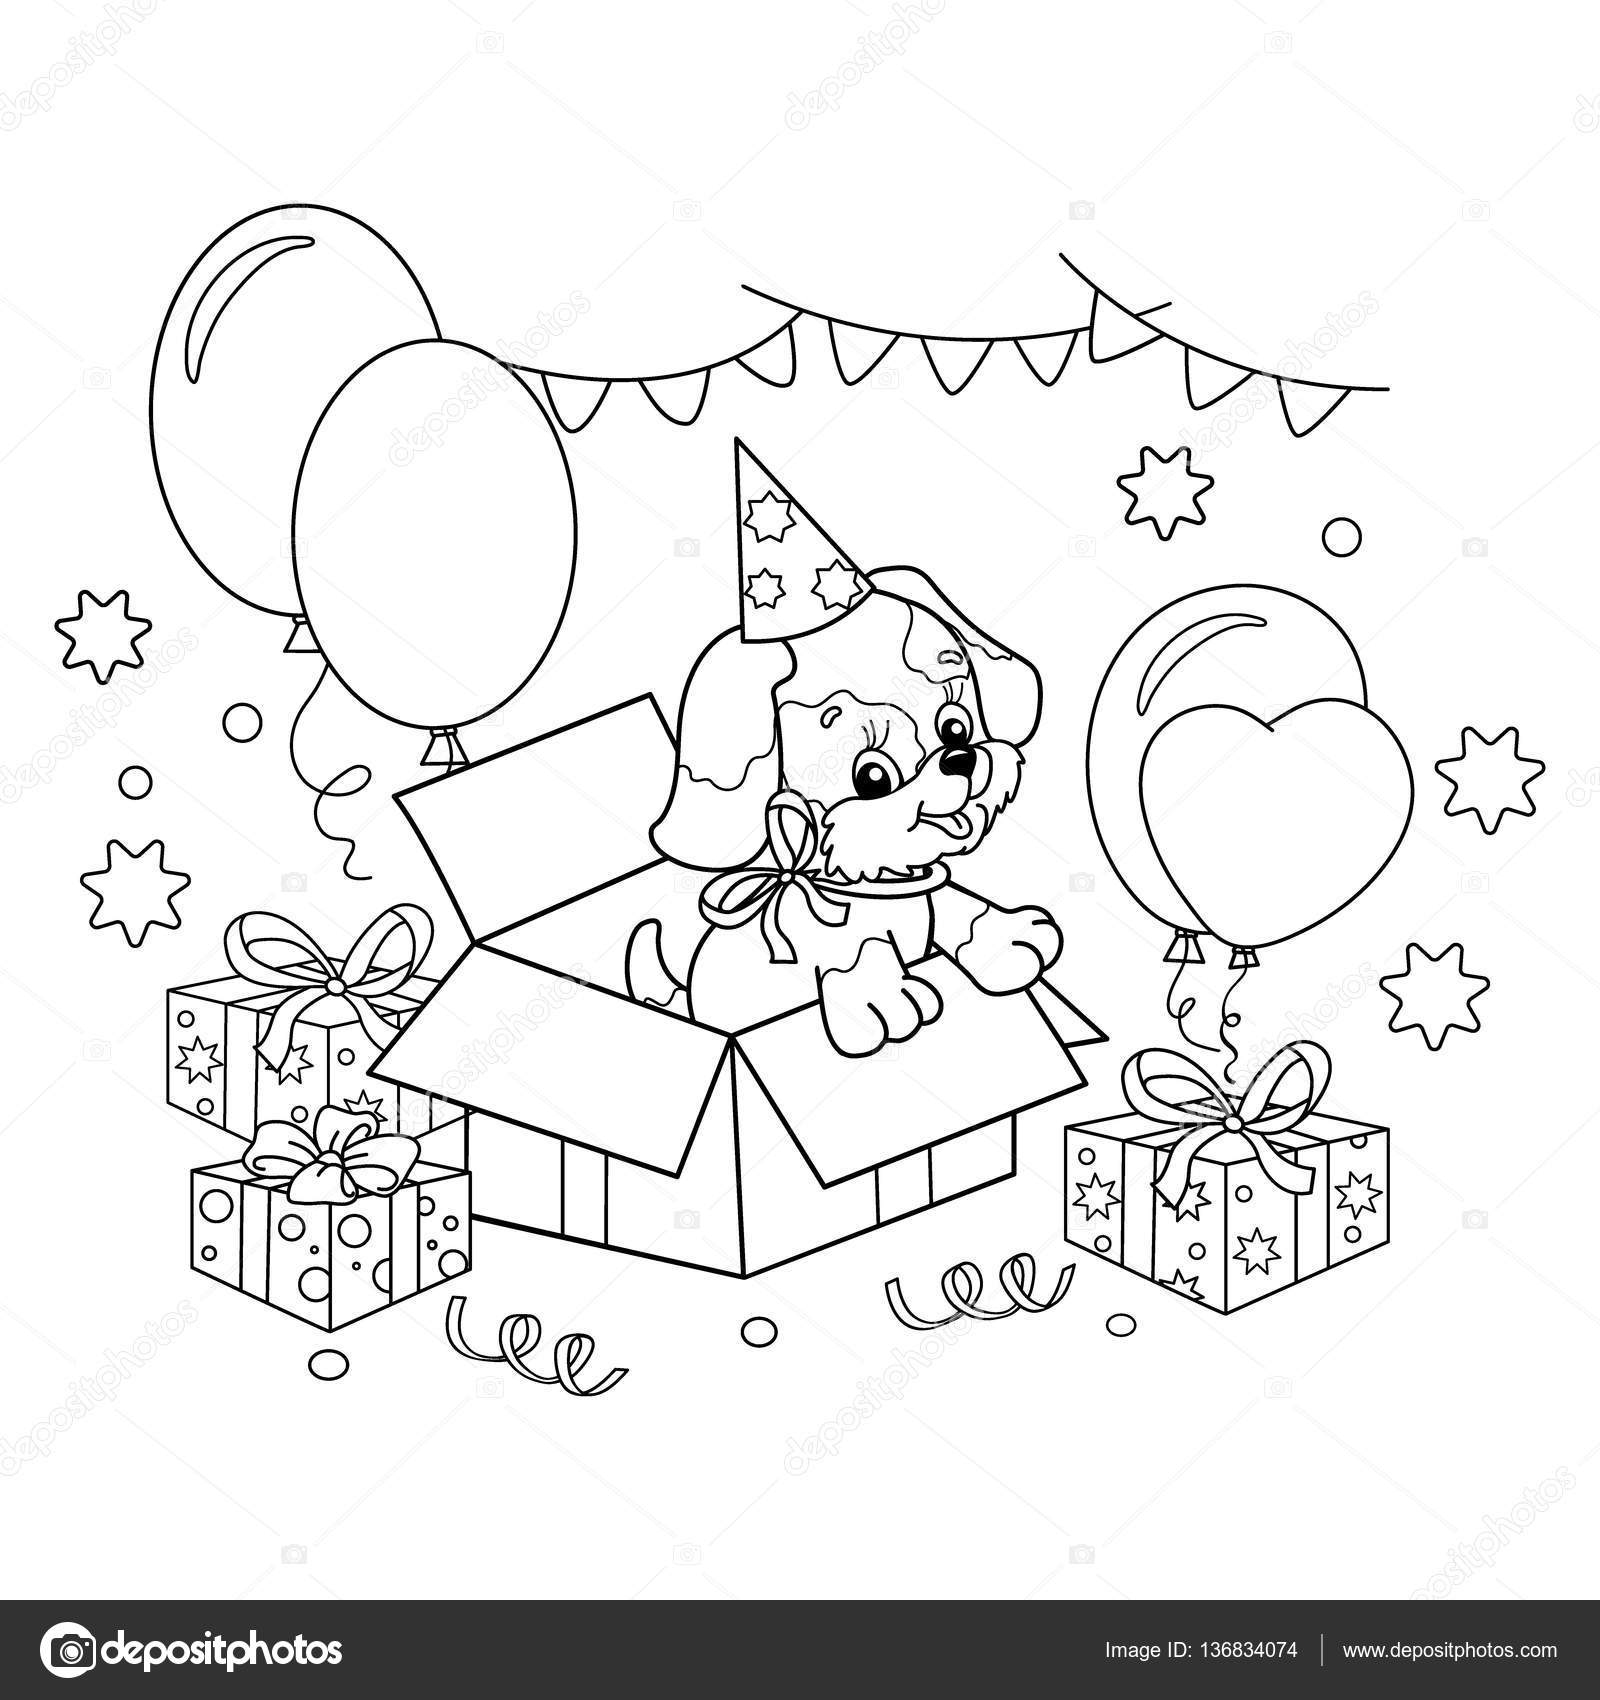 coloring page outline of cute puppy cartoon dog with bow gift